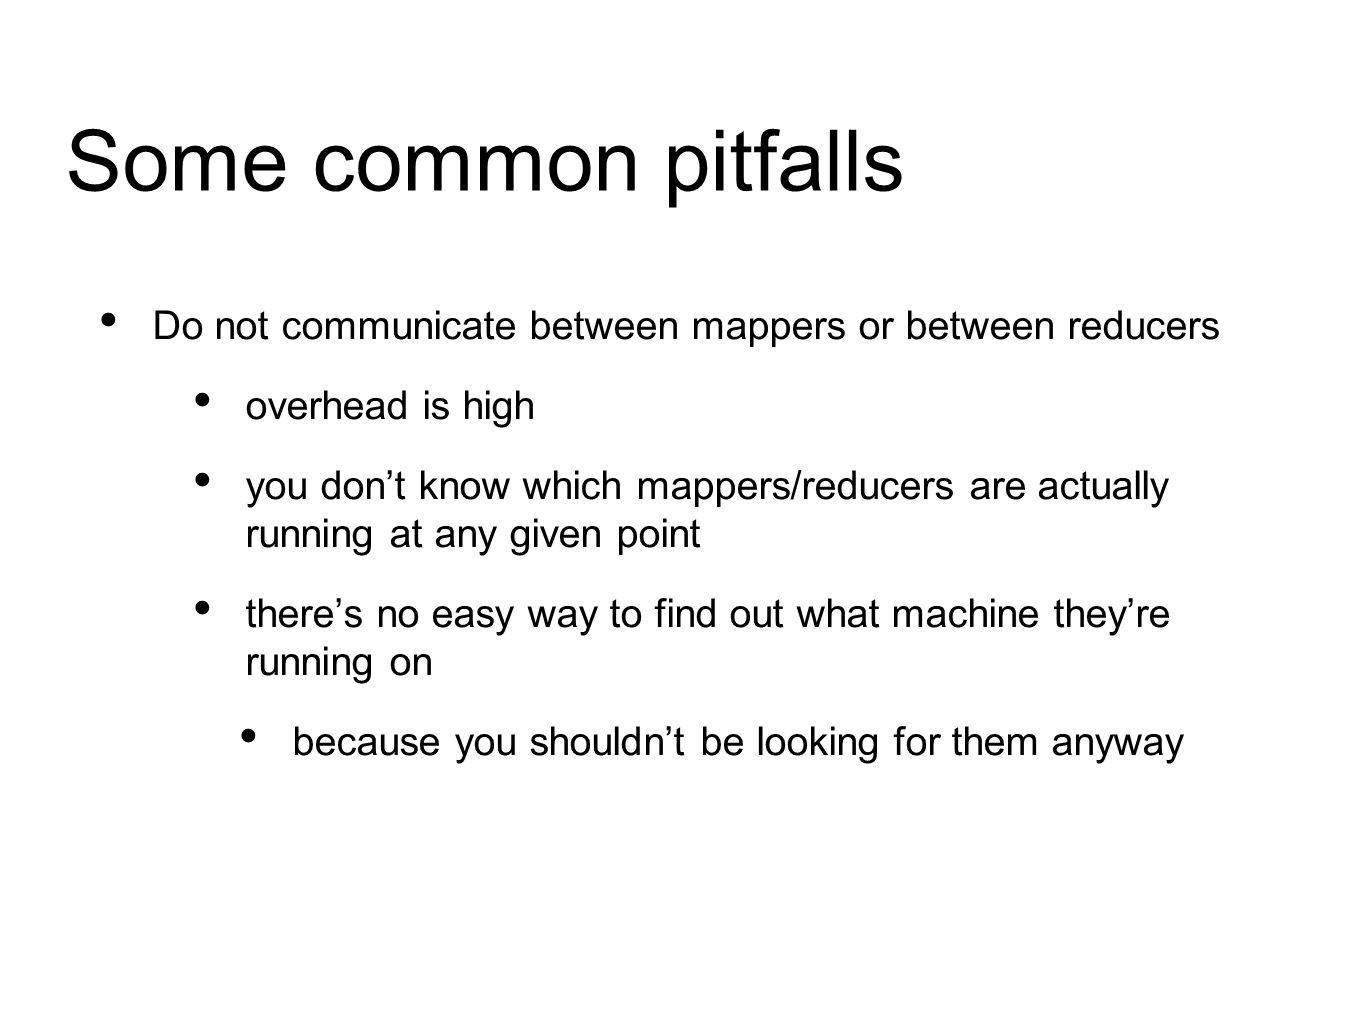 Some common pitfalls Do not communicate between mappers or between reducers overhead is high you don't know which mappers/reducers are actually running at any given point there's no easy way to find out what machine they're running on because you shouldn't be looking for them anyway